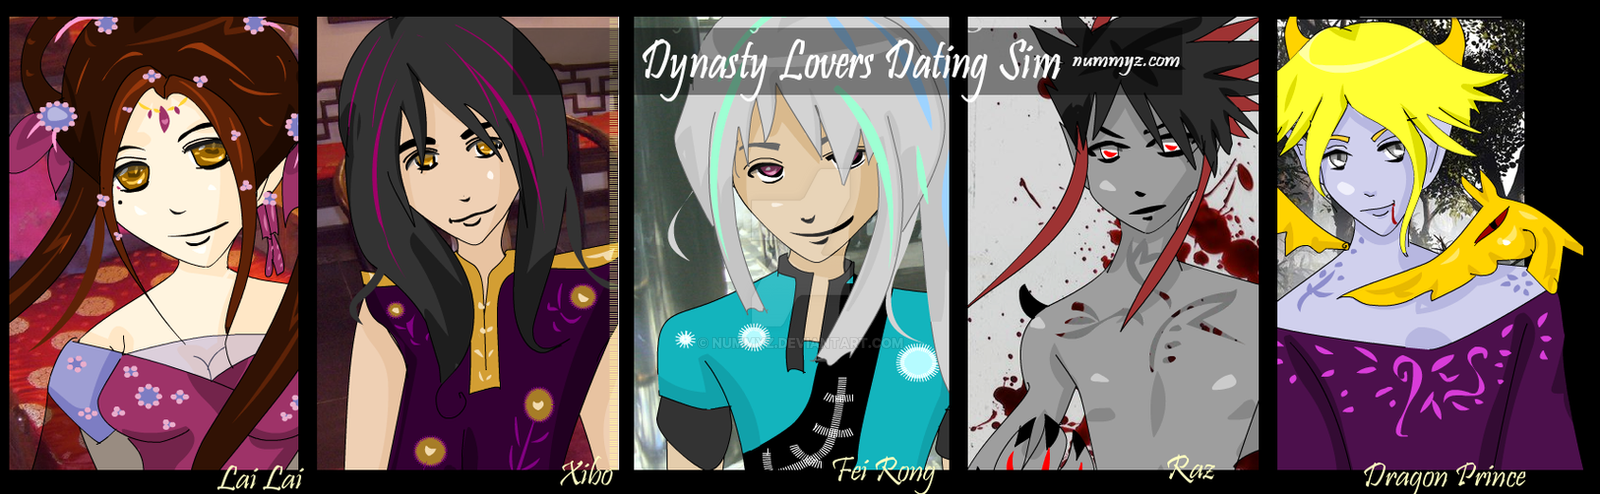 Kaleidoscope Dating Sim 2: Love, Fate, Destiny Nummyz